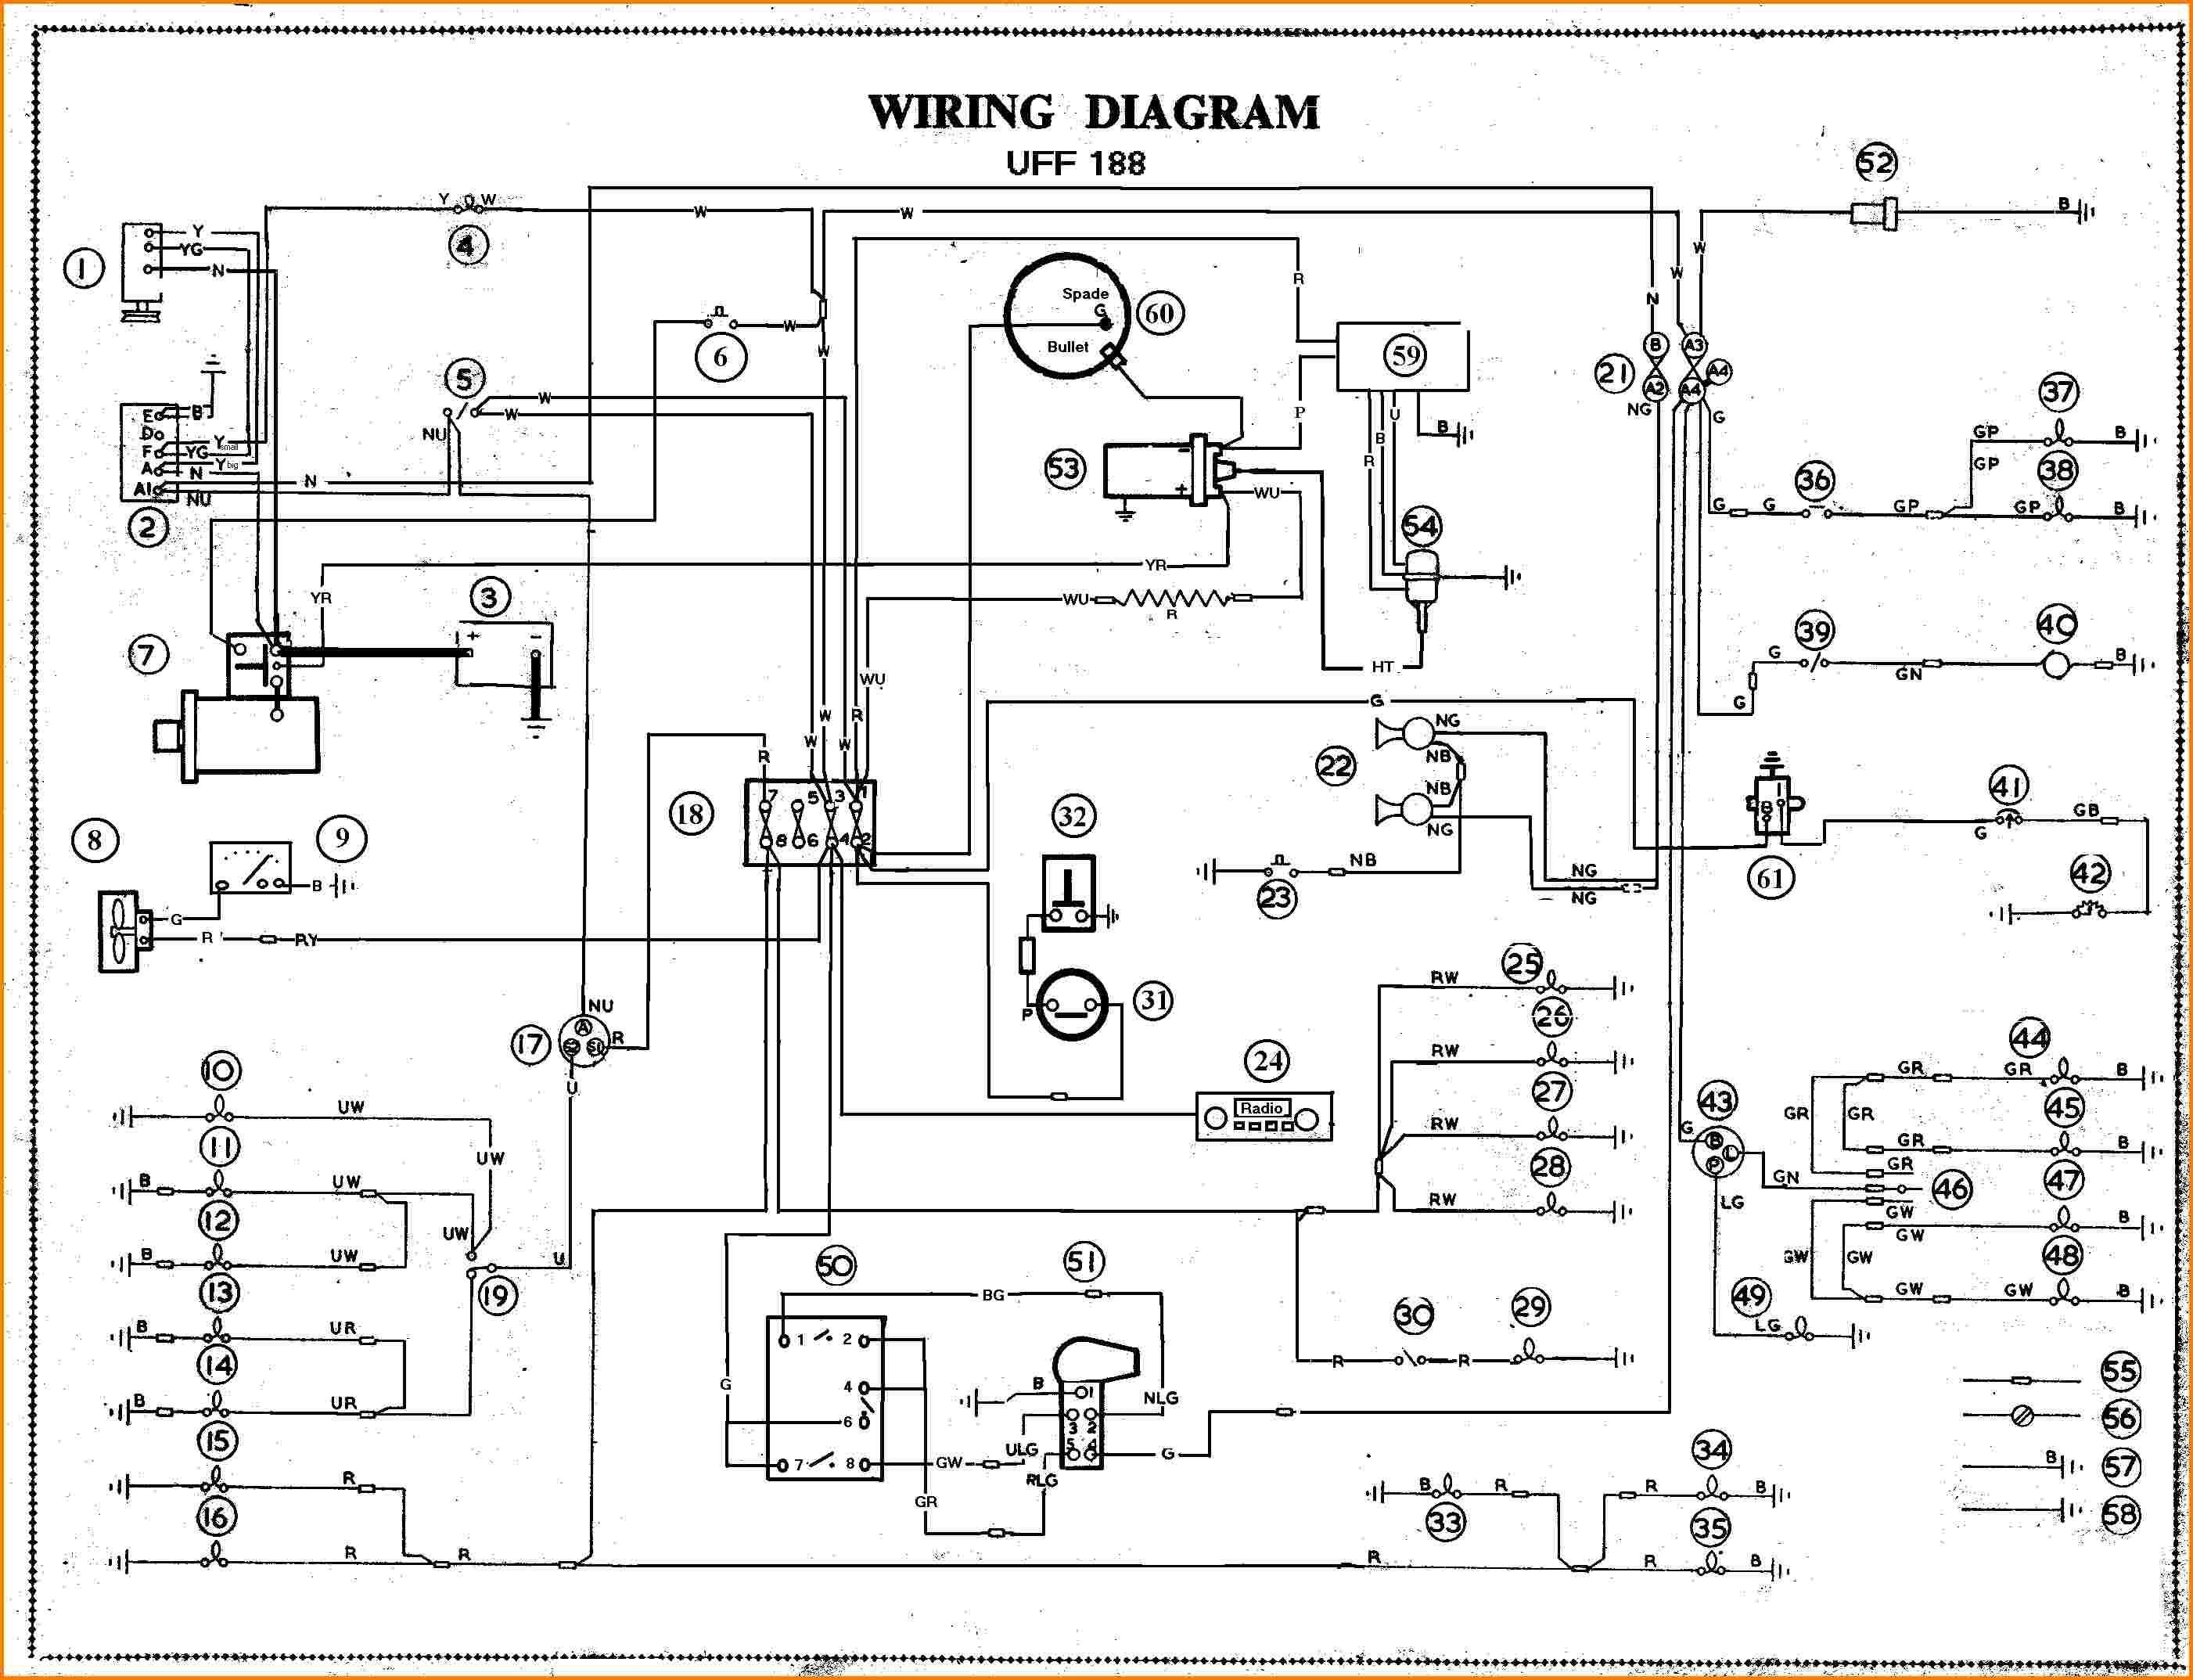 Line Wiring Diagram | Wiring Diagram Database on lincoln 7 pin wiring diagram, rv 7 pin wiring diagram, gmc 7 pin wiring diagram, ford 7 pin wiring diagram, truck 7 pin wiring diagram, haulmark 7 pin wiring diagram, john deere 7 pin wiring diagram,